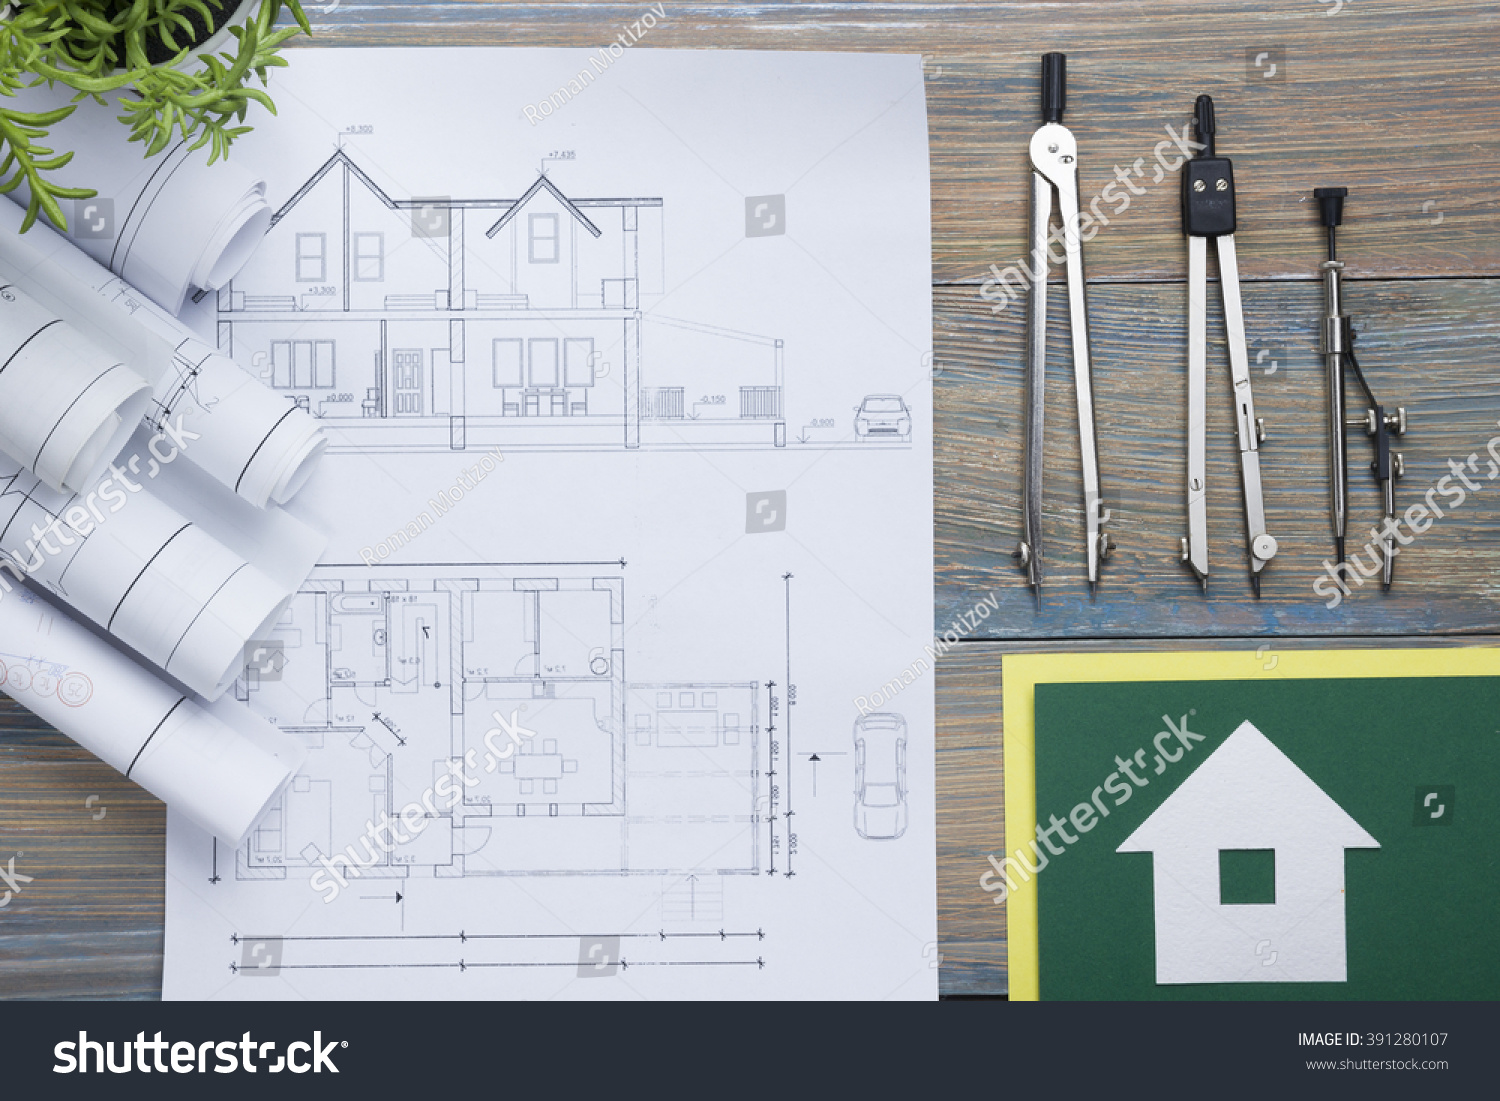 Vintage Architectural Blueprints Royalty Free Real Estate Concept Architectural 391280107 Stock